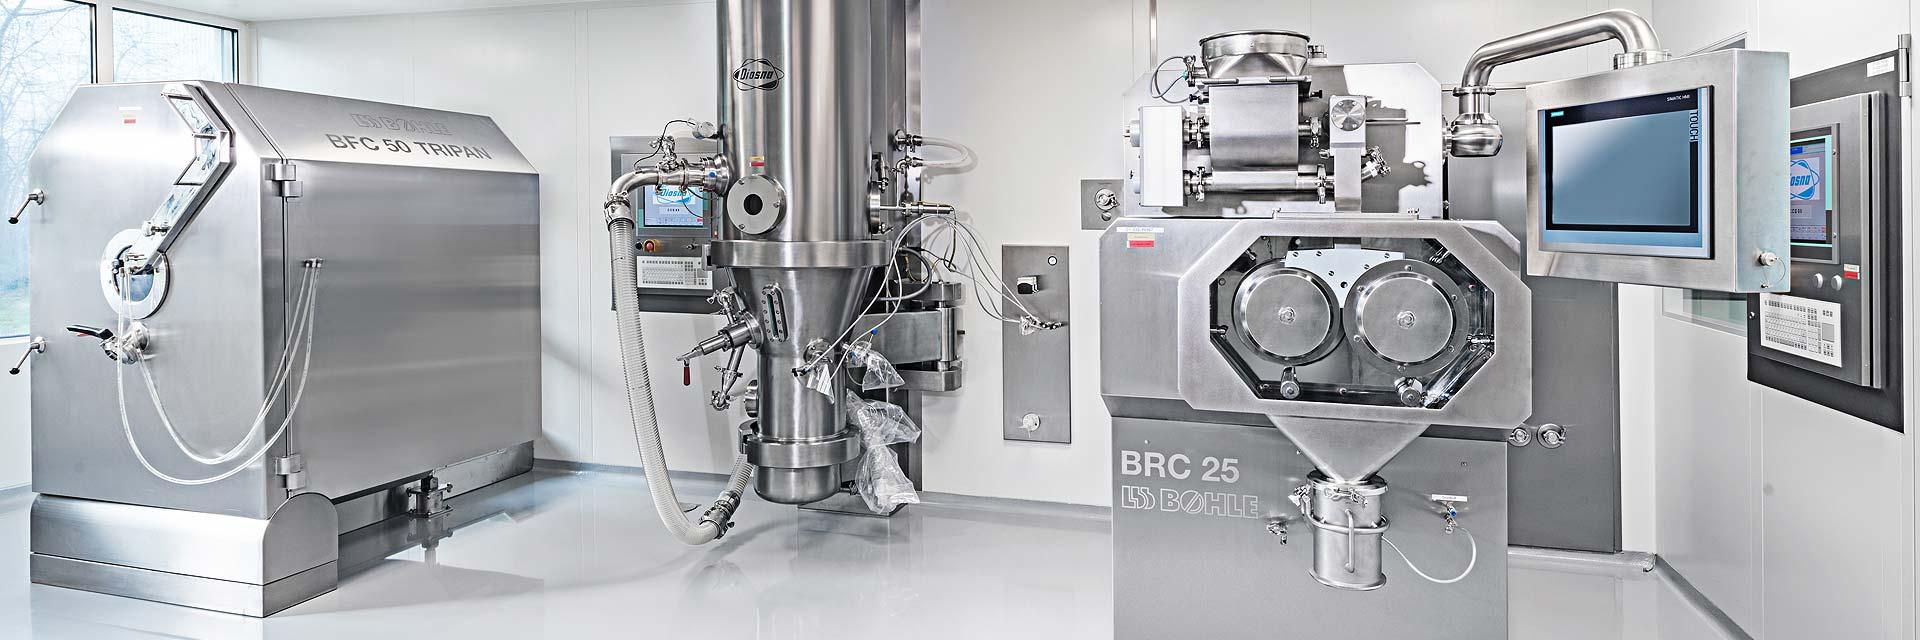 CordenPharma Oral Formulation Tablets & Capsules production mixers including L.B. Bohle BRC 25 dry granulator (roller compactor)